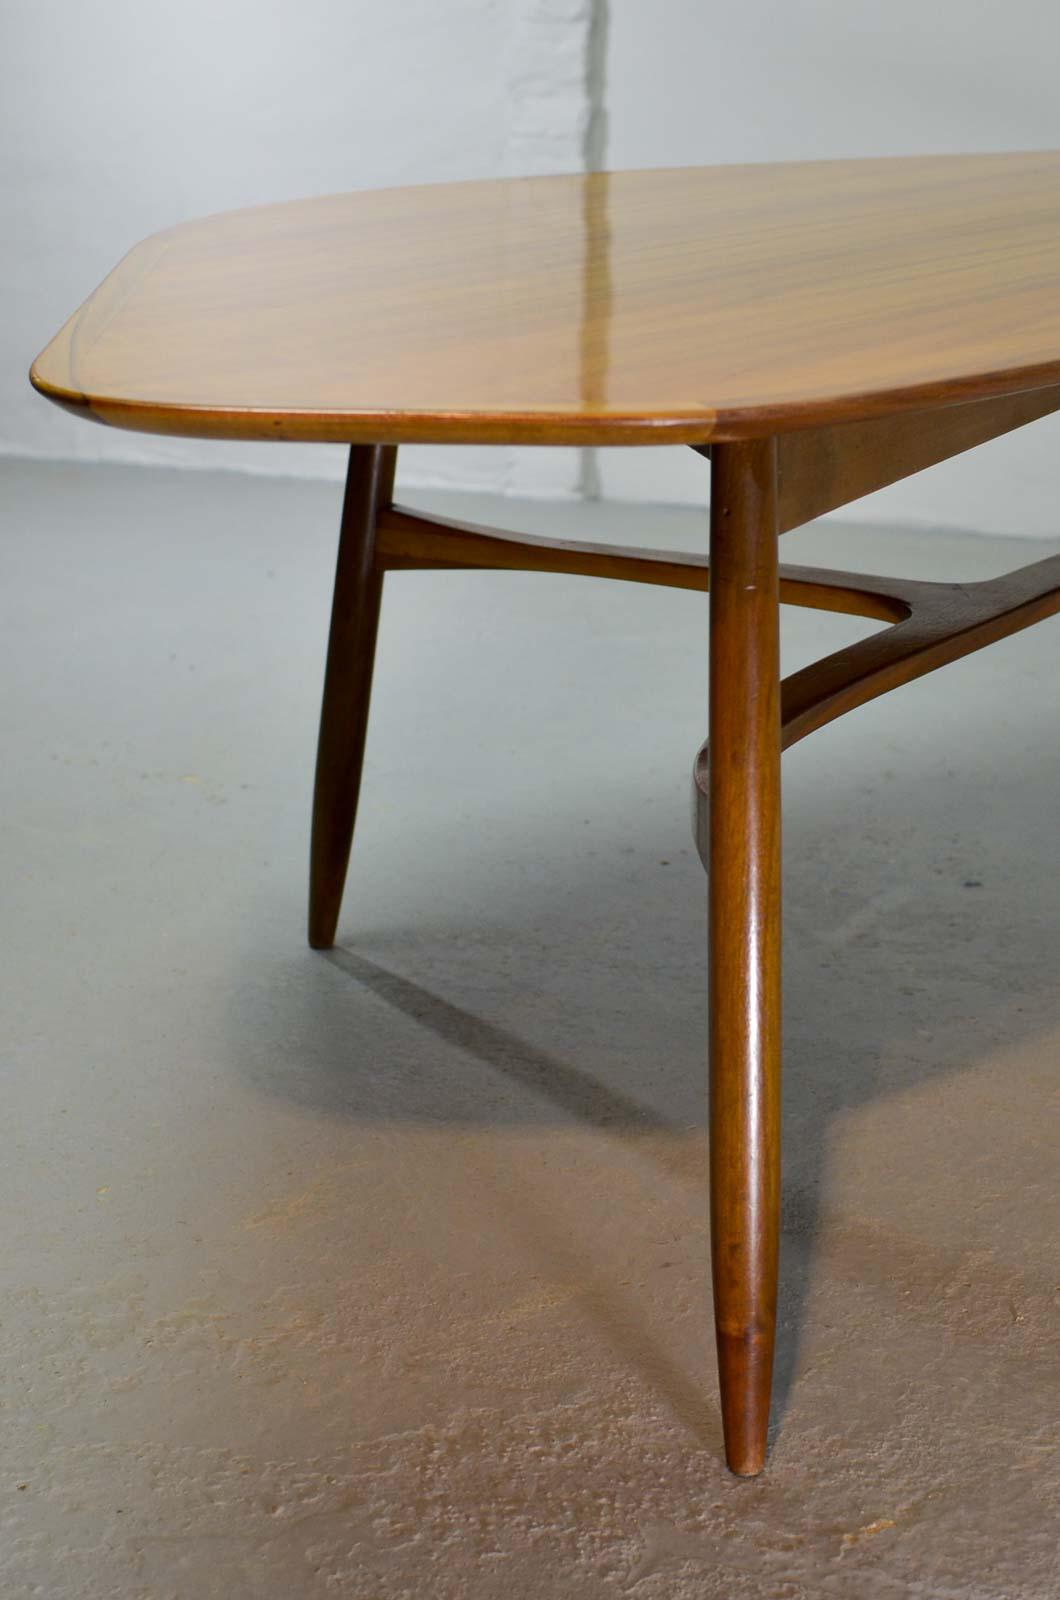 Teak Mid Century Swedish Design Free Form Kidney Shaped Lacquered Teakwood Coffee  Table By Svante